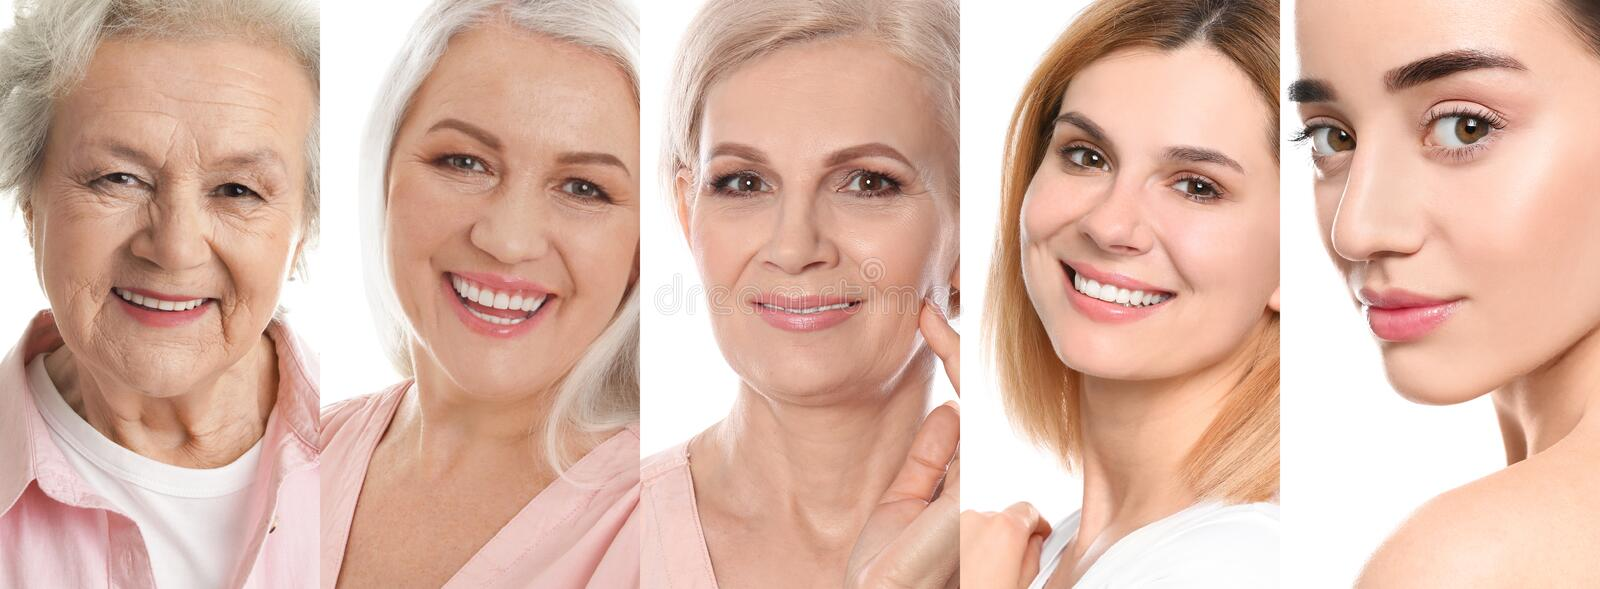 Collage of women with beautiful faces stock images